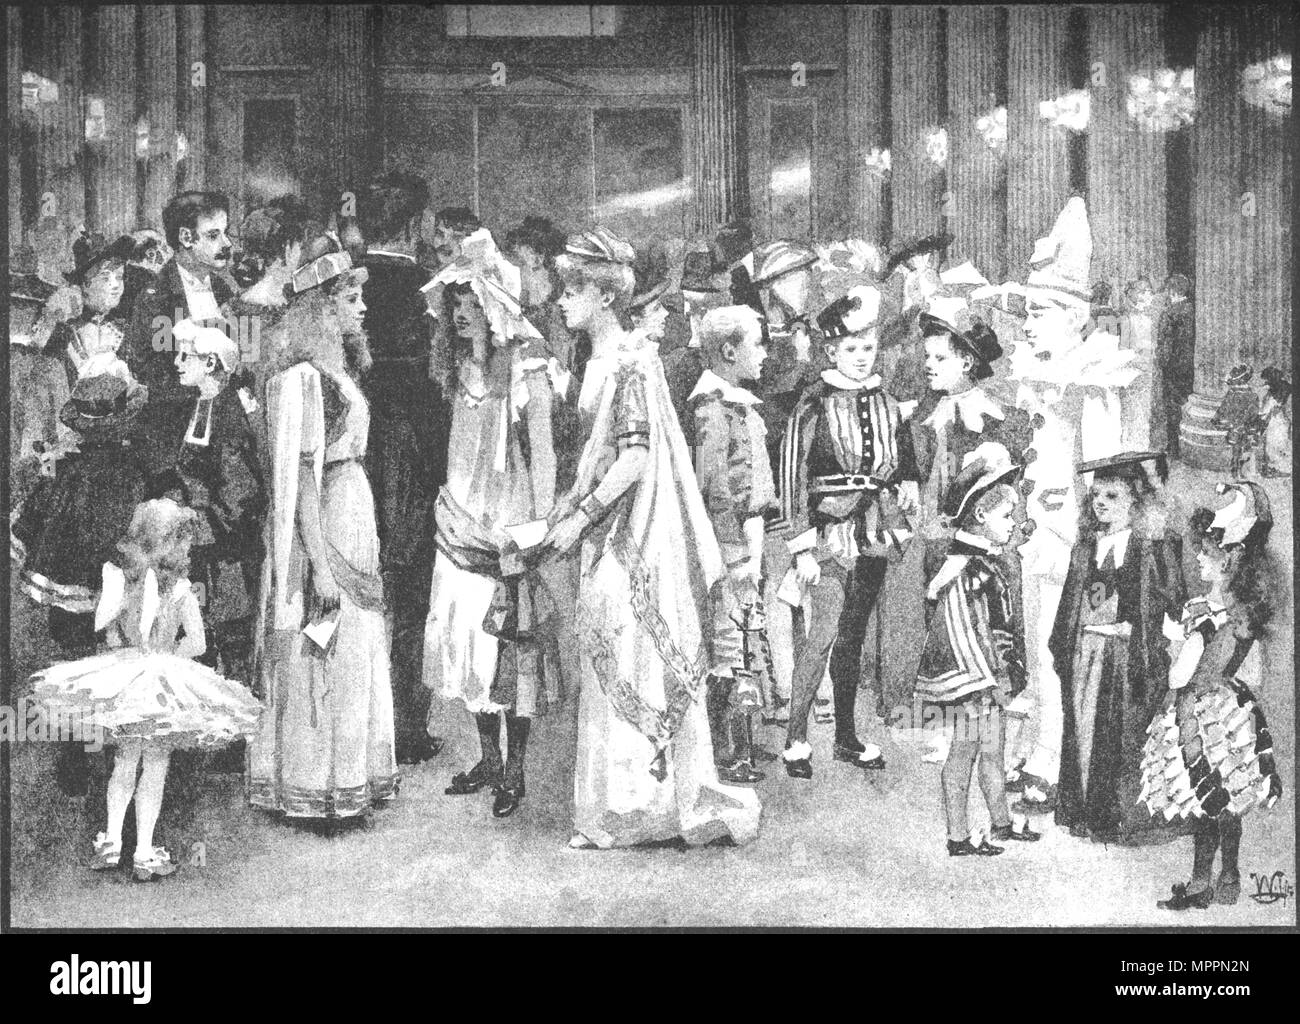 'Juvenile Ball at the Mansion House - Between the Dances', 1891. Artist: William Luker. - Stock Image